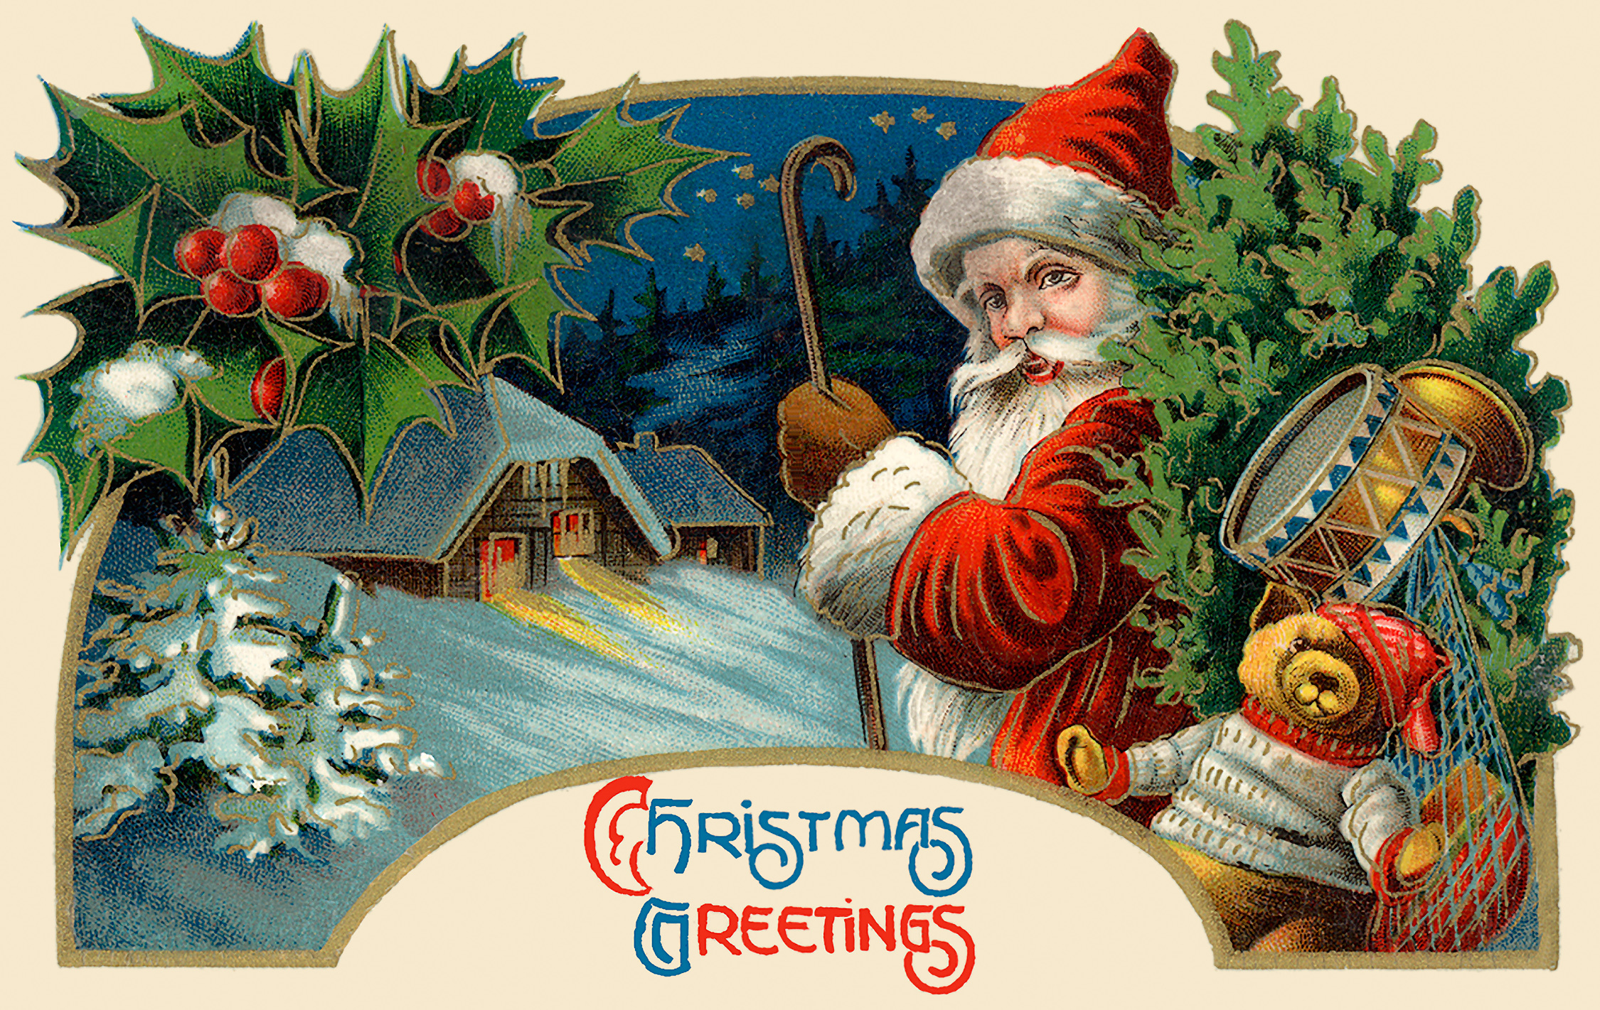 More Retro Santa Claus art – The Long Goodbye